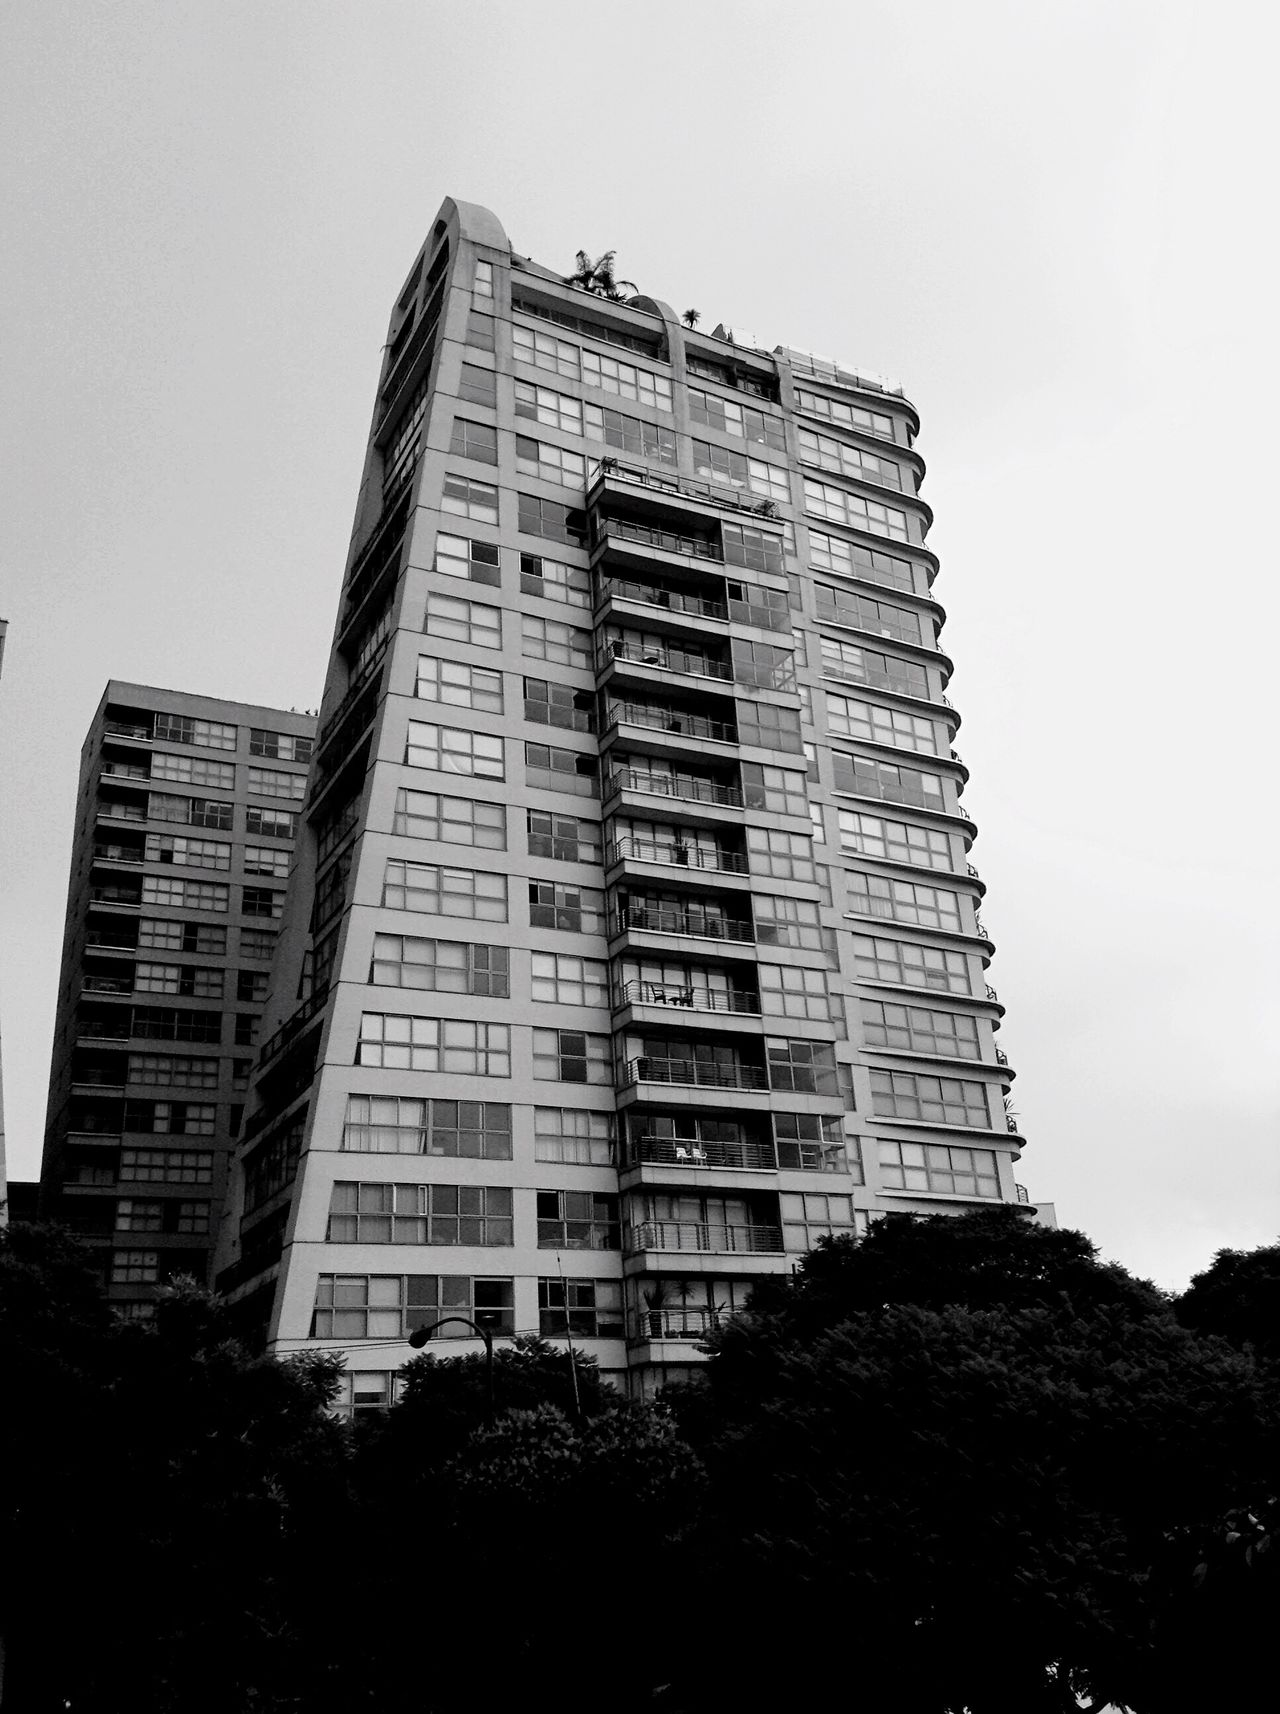 Embrace Urban Life Building Exterior Low Angle View Architecture EyeEm Best Shots - Black + White Tocar el cielo